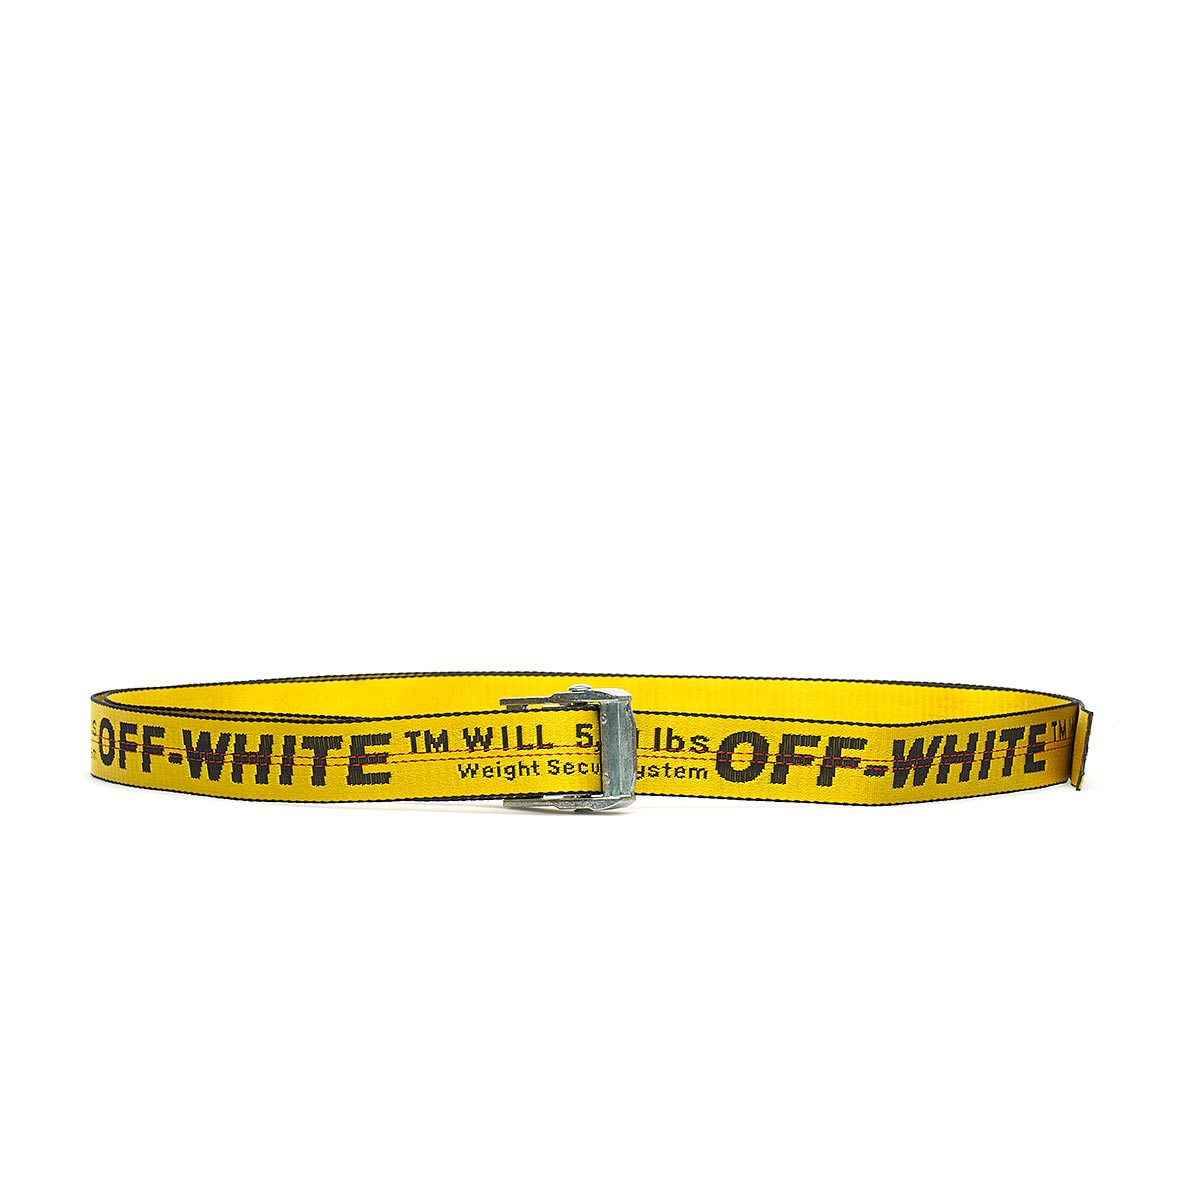 Lyst - Off-White c o Virgil Abloh Industrial Belt in Yellow for Men 6aad67e251d4